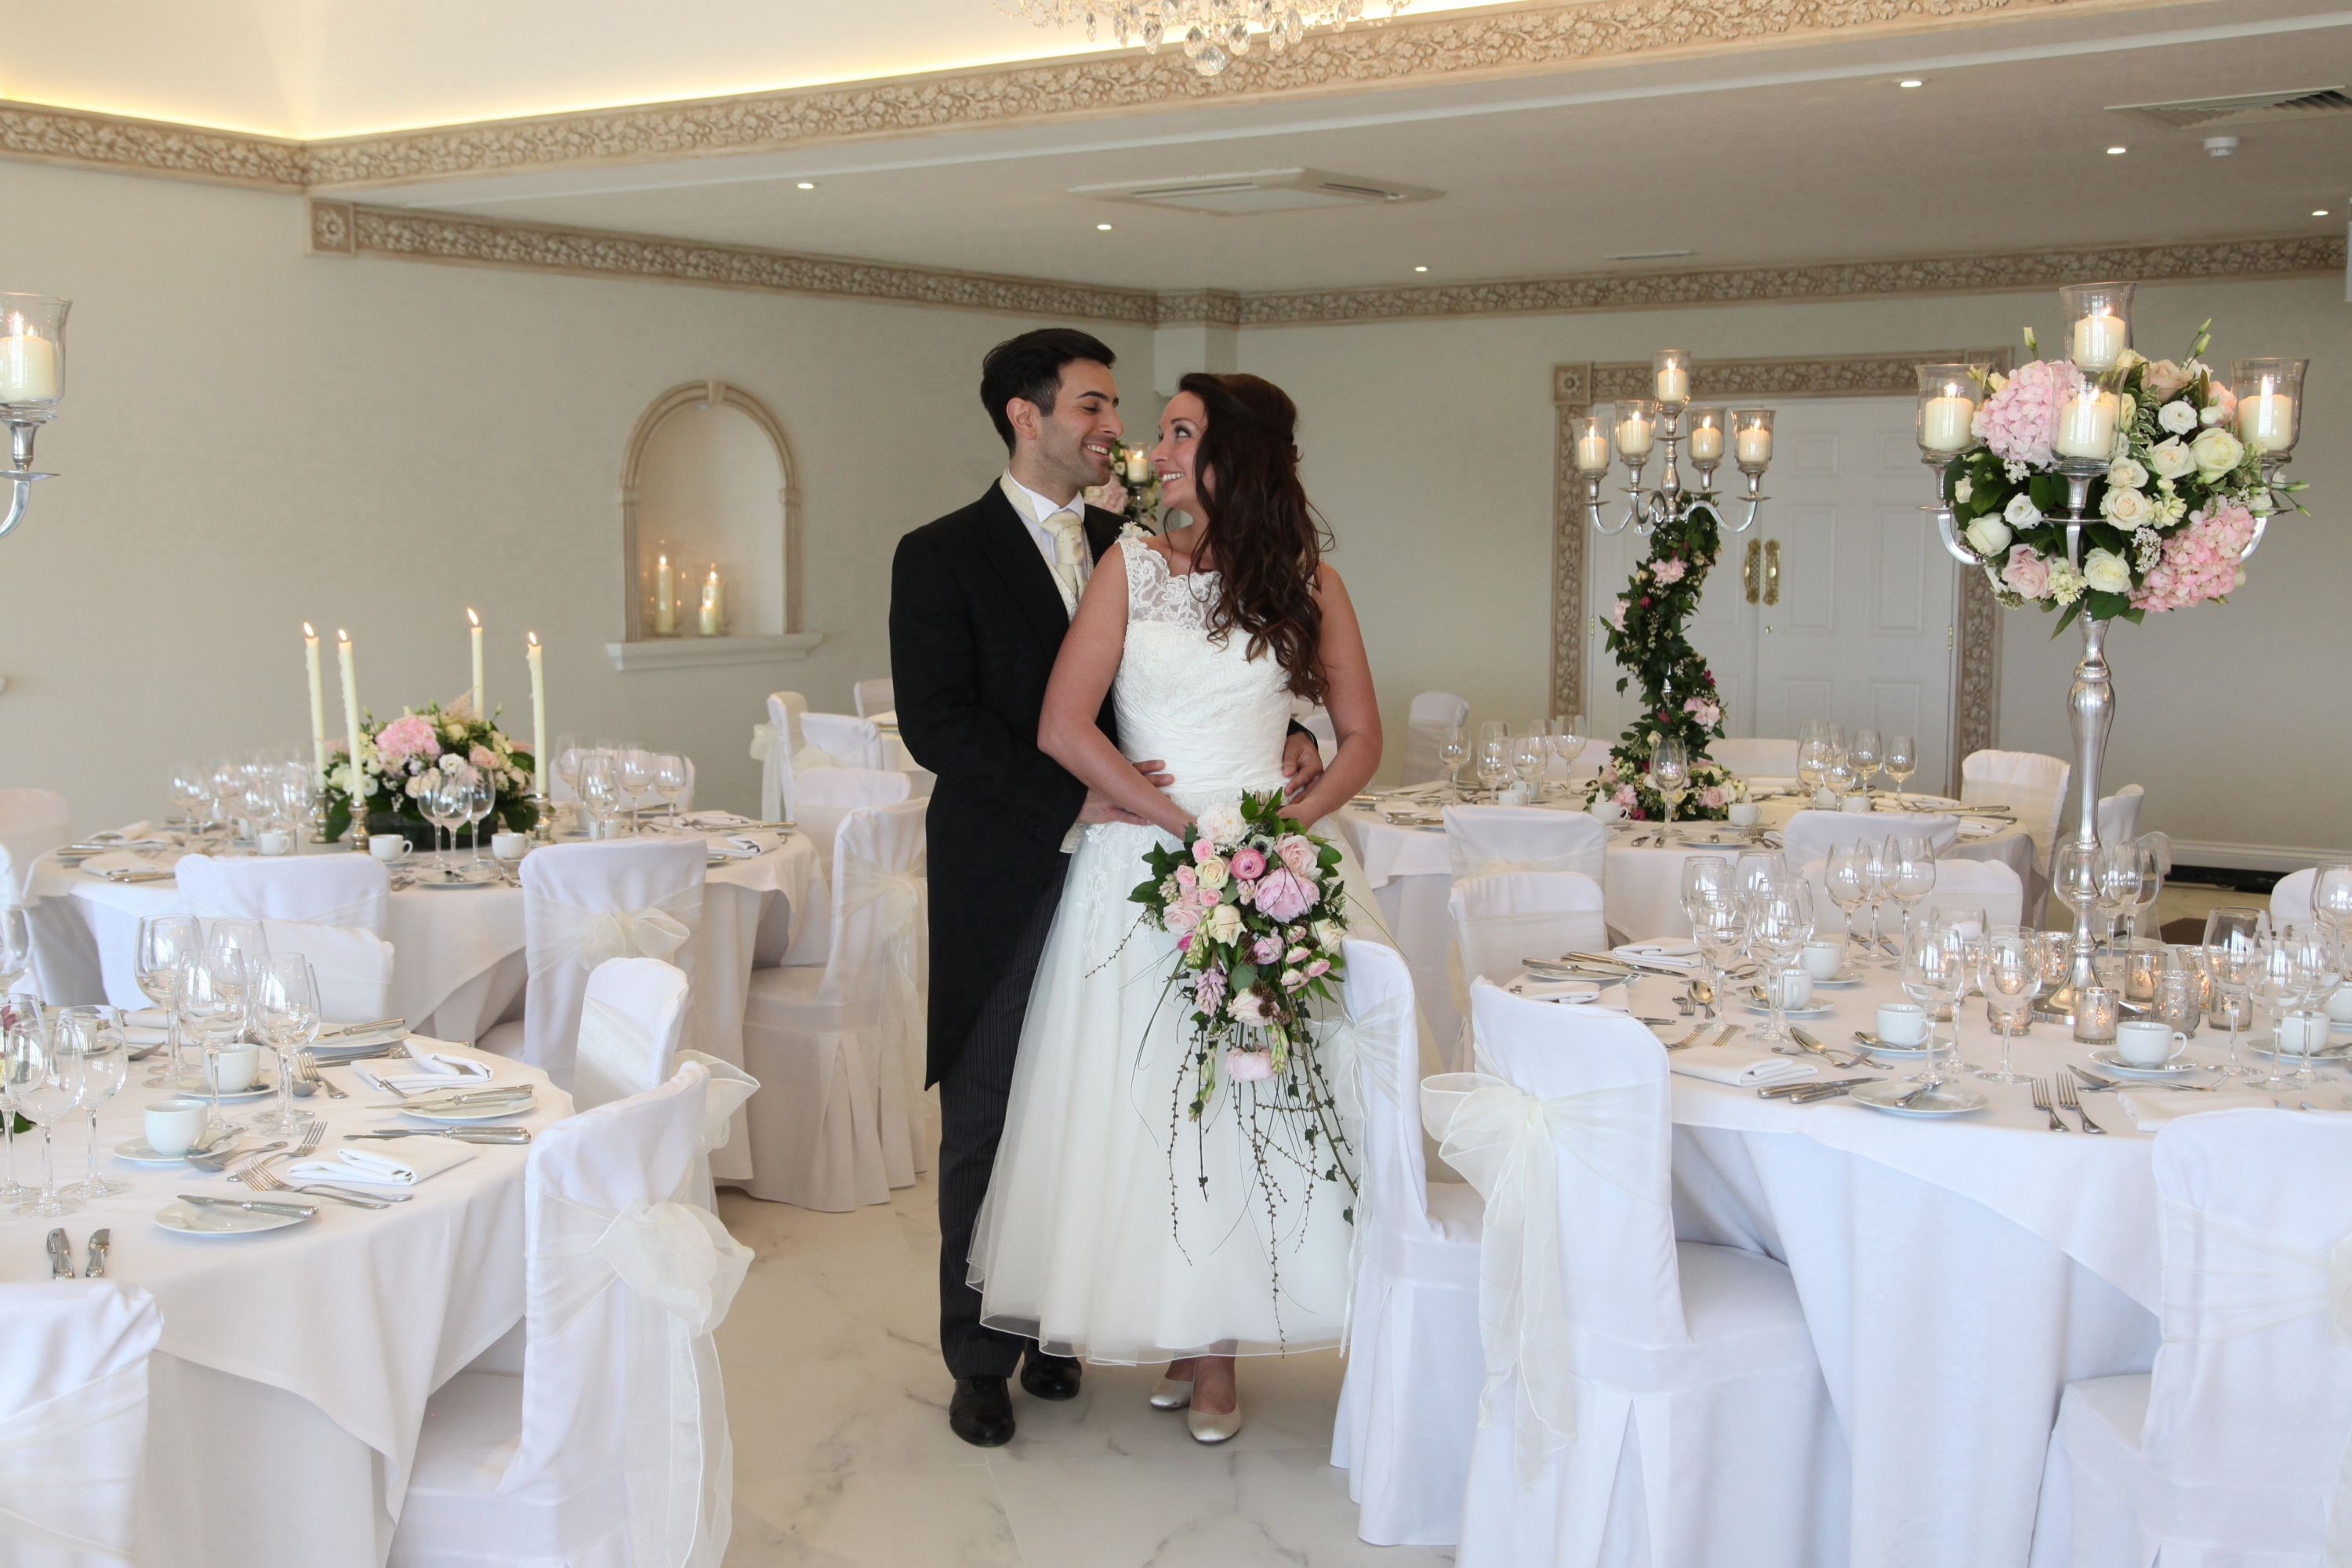 The ballroom at Froyle Park dressed in ivory sashes and white